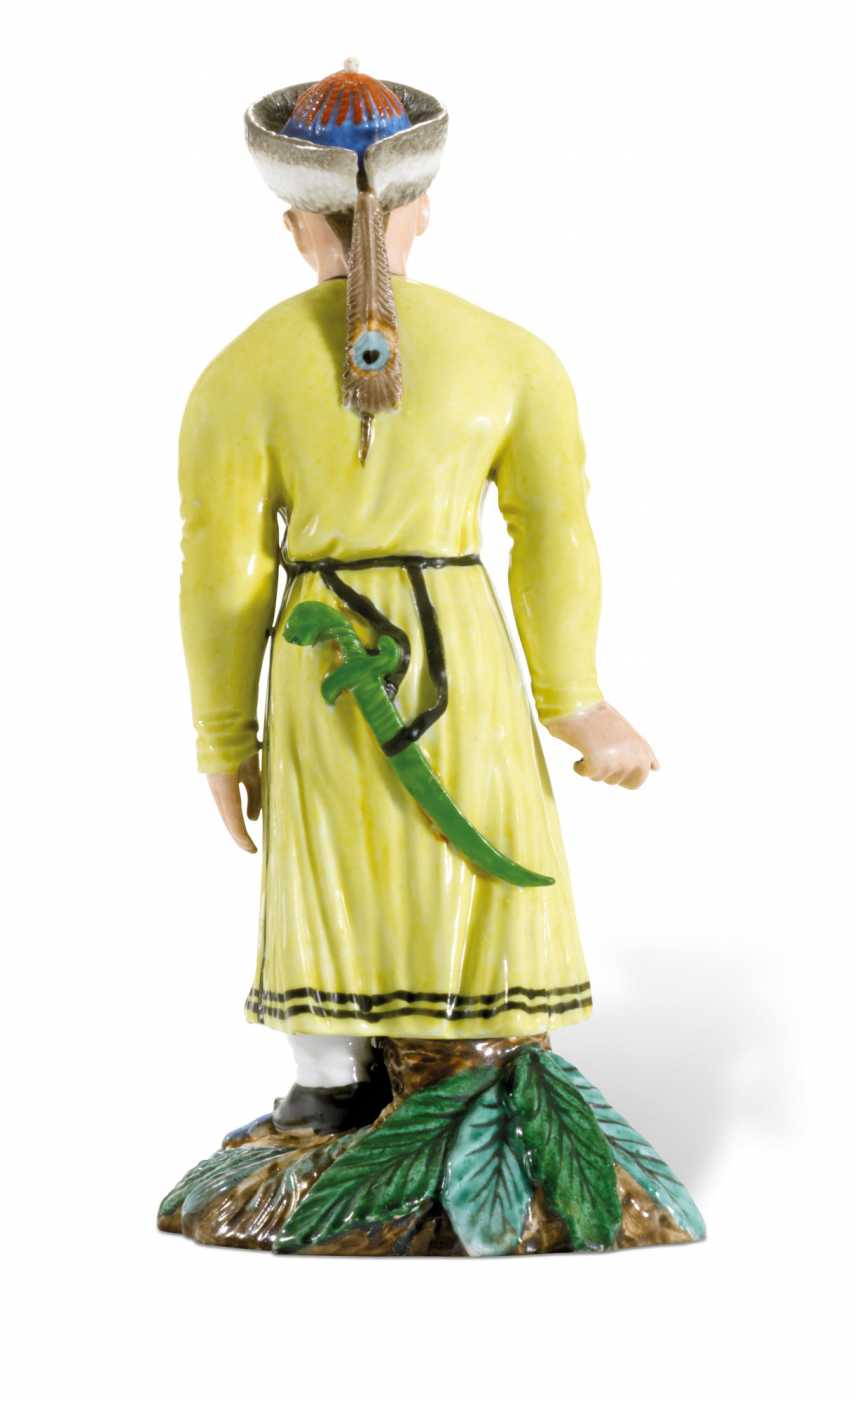 A PORCELAIN FIGURE OF A BURYAT MAN FROM THE 'PEOPLES OF RUSSIA' SERIES - photo 2